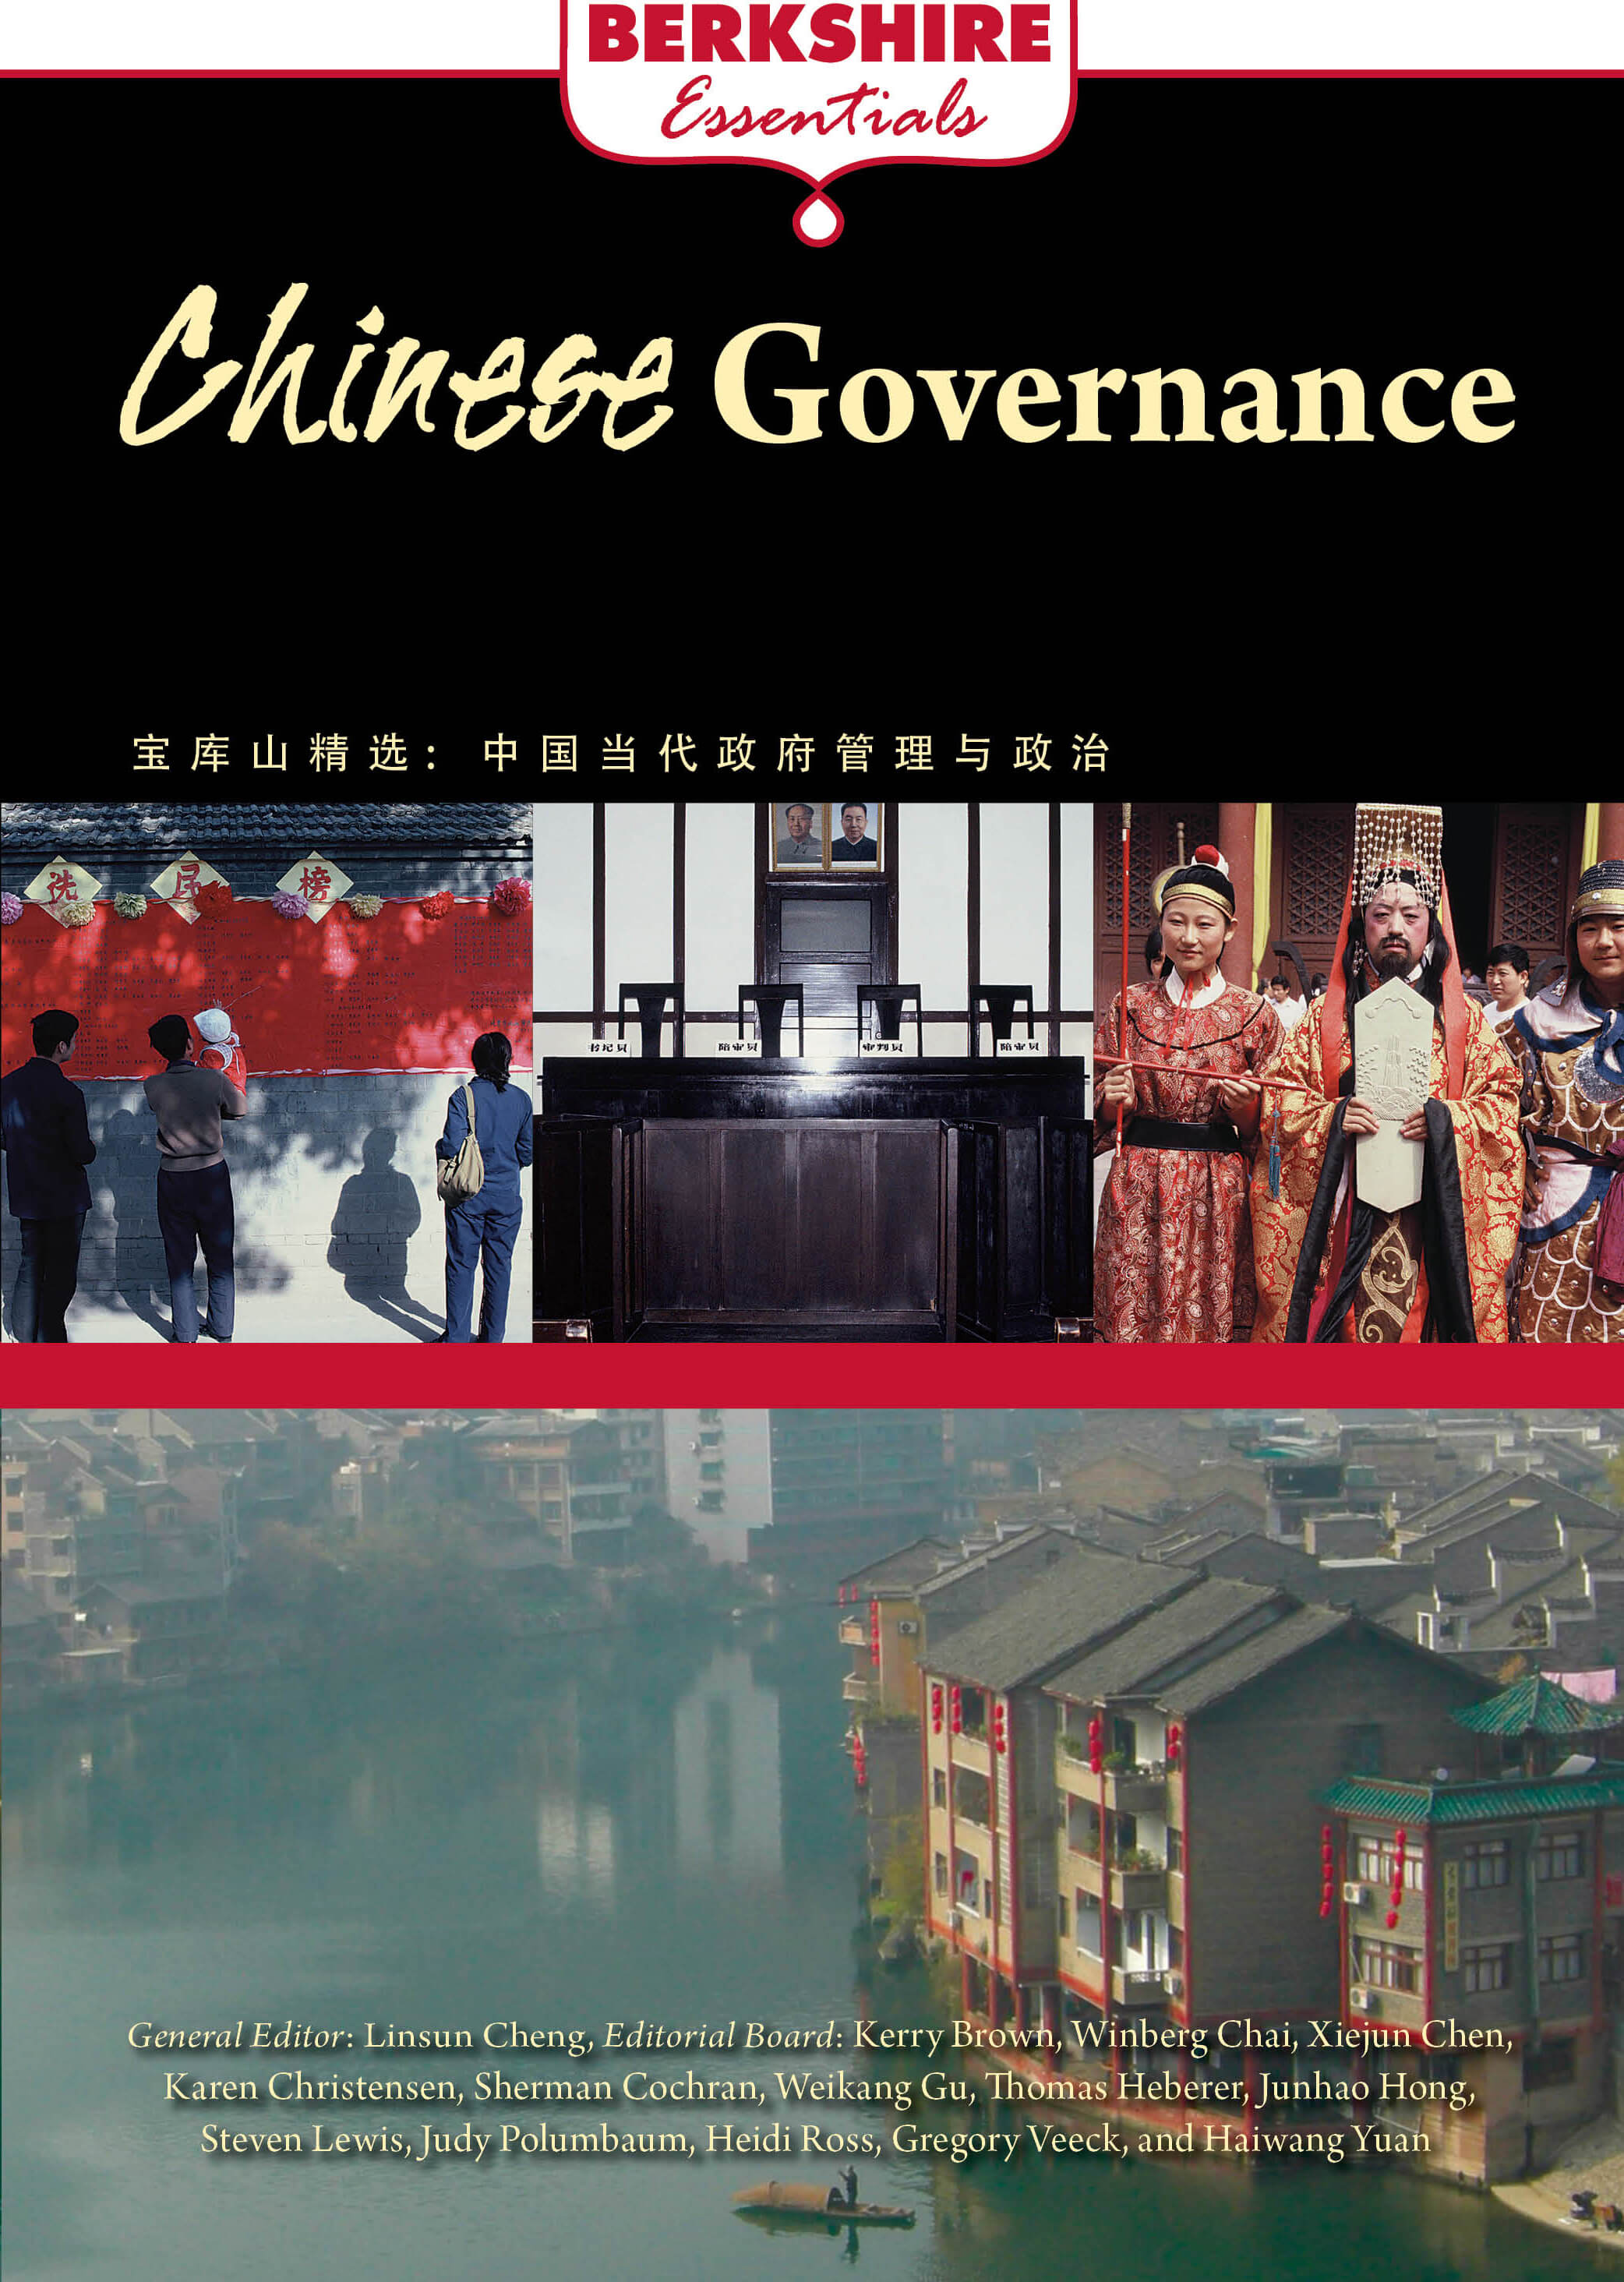 Chinese Governance: a Berkshire Essential